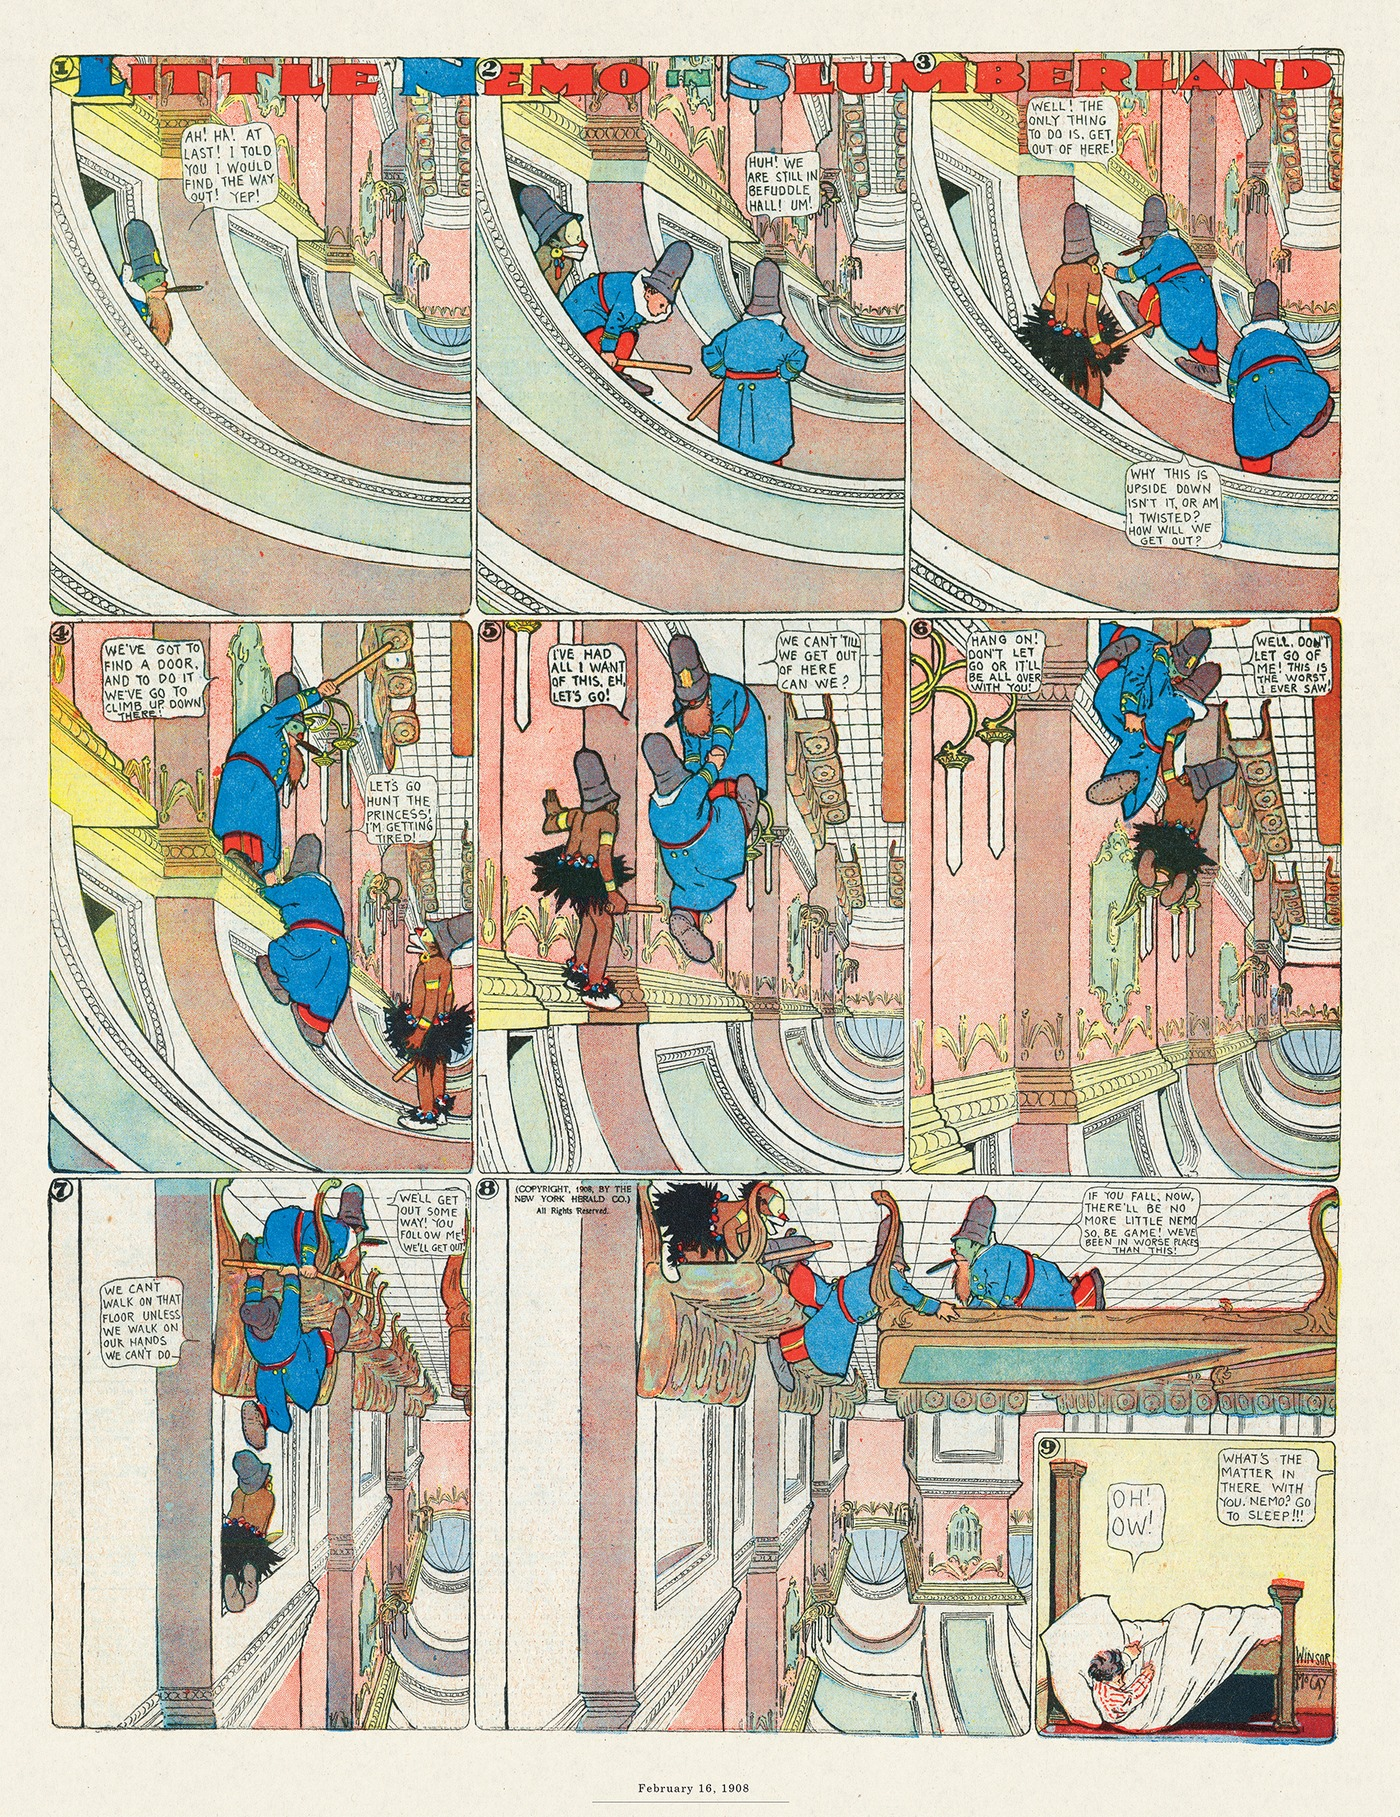 Little Nemo by Winsor McCay on Thu, 17 Sep 2020